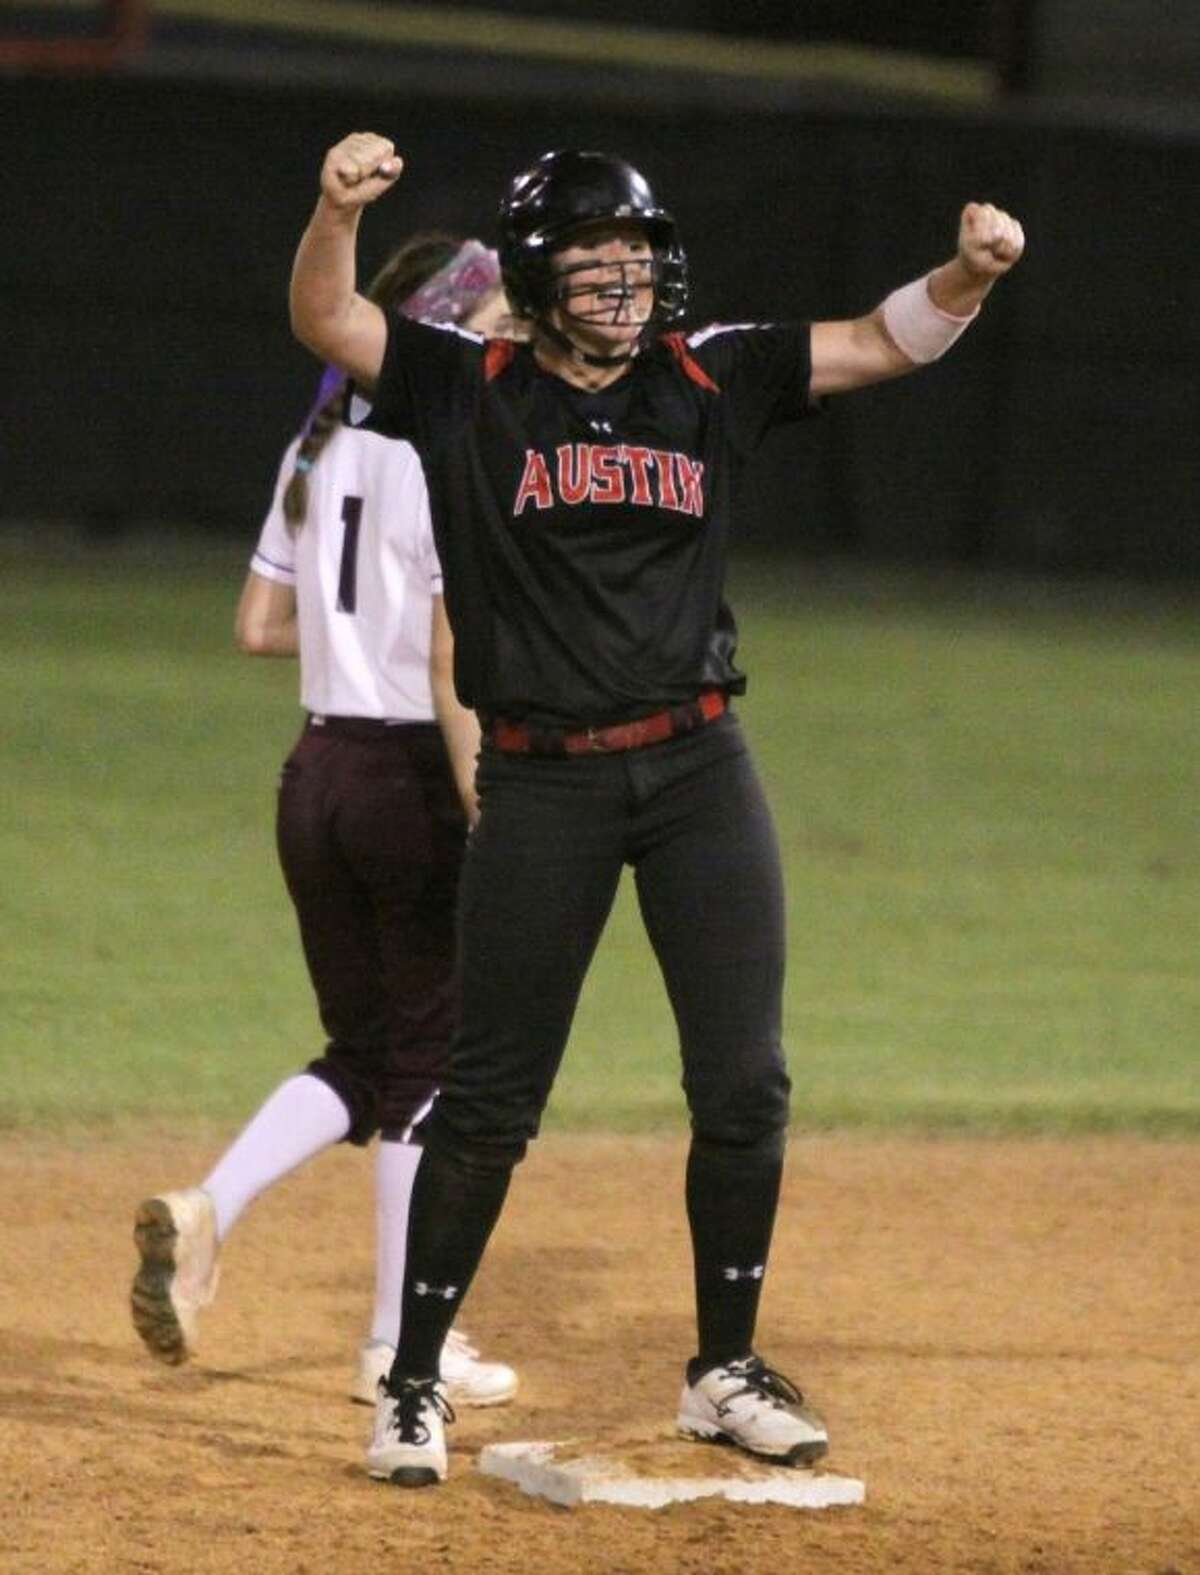 Fort Bend Austin's Brooke Vannoy celebrates on second base after hitting a double to push in the winning run in the 6th inning against Clear Creek Aug. 25 at Austin High School.